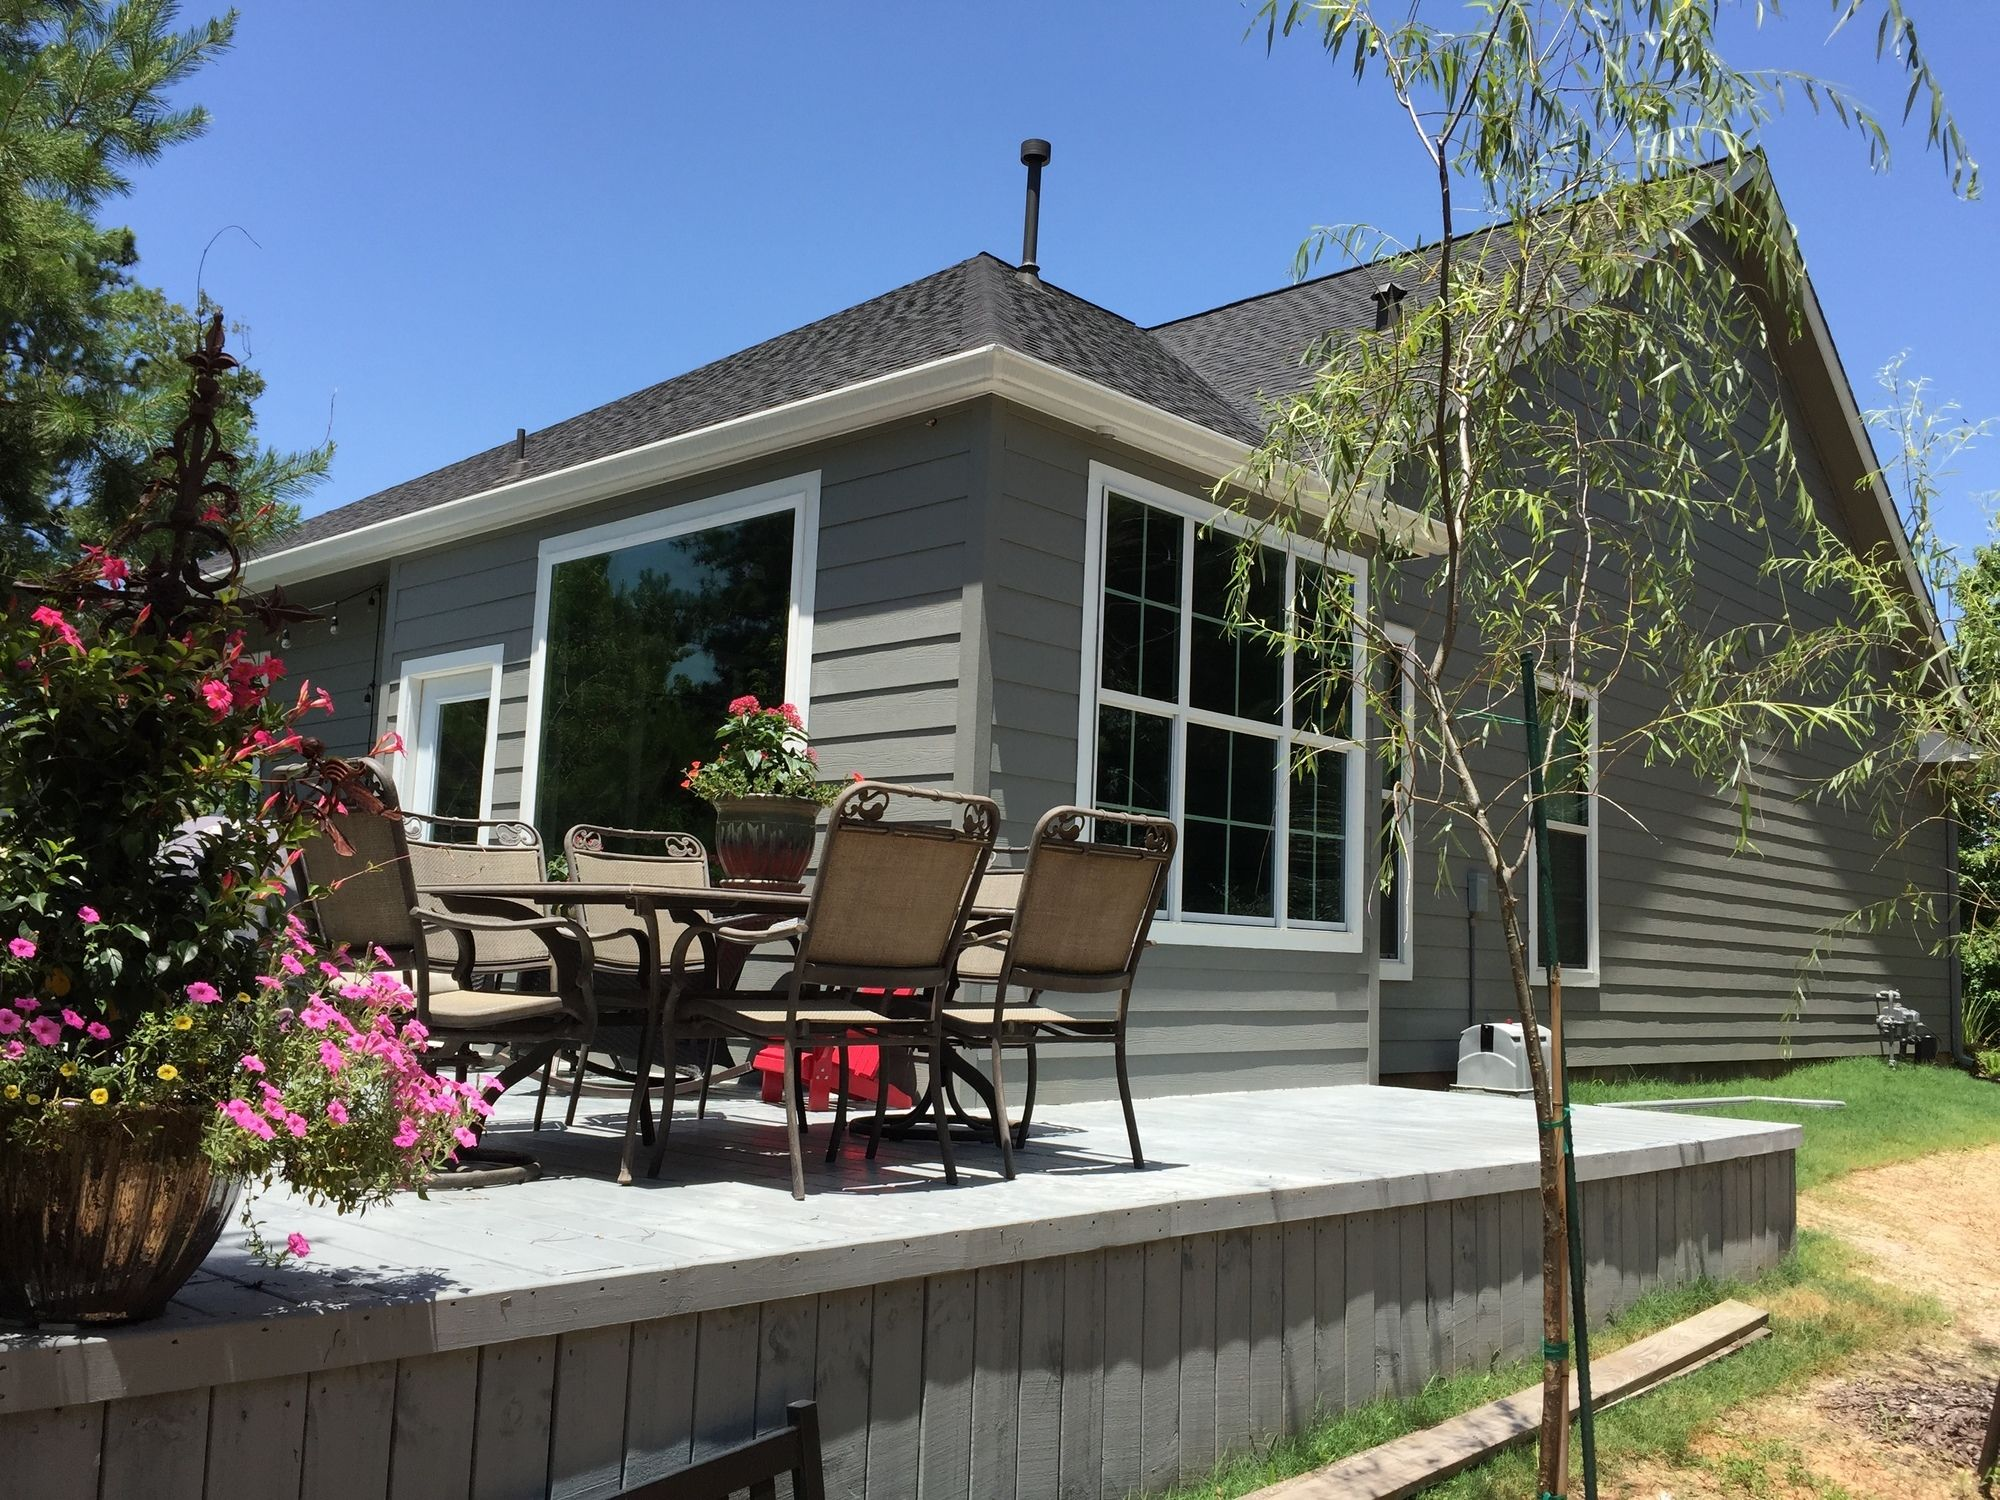 Patio Covers - Primo Outdoor Living on Primo Outdoor Living  id=77721